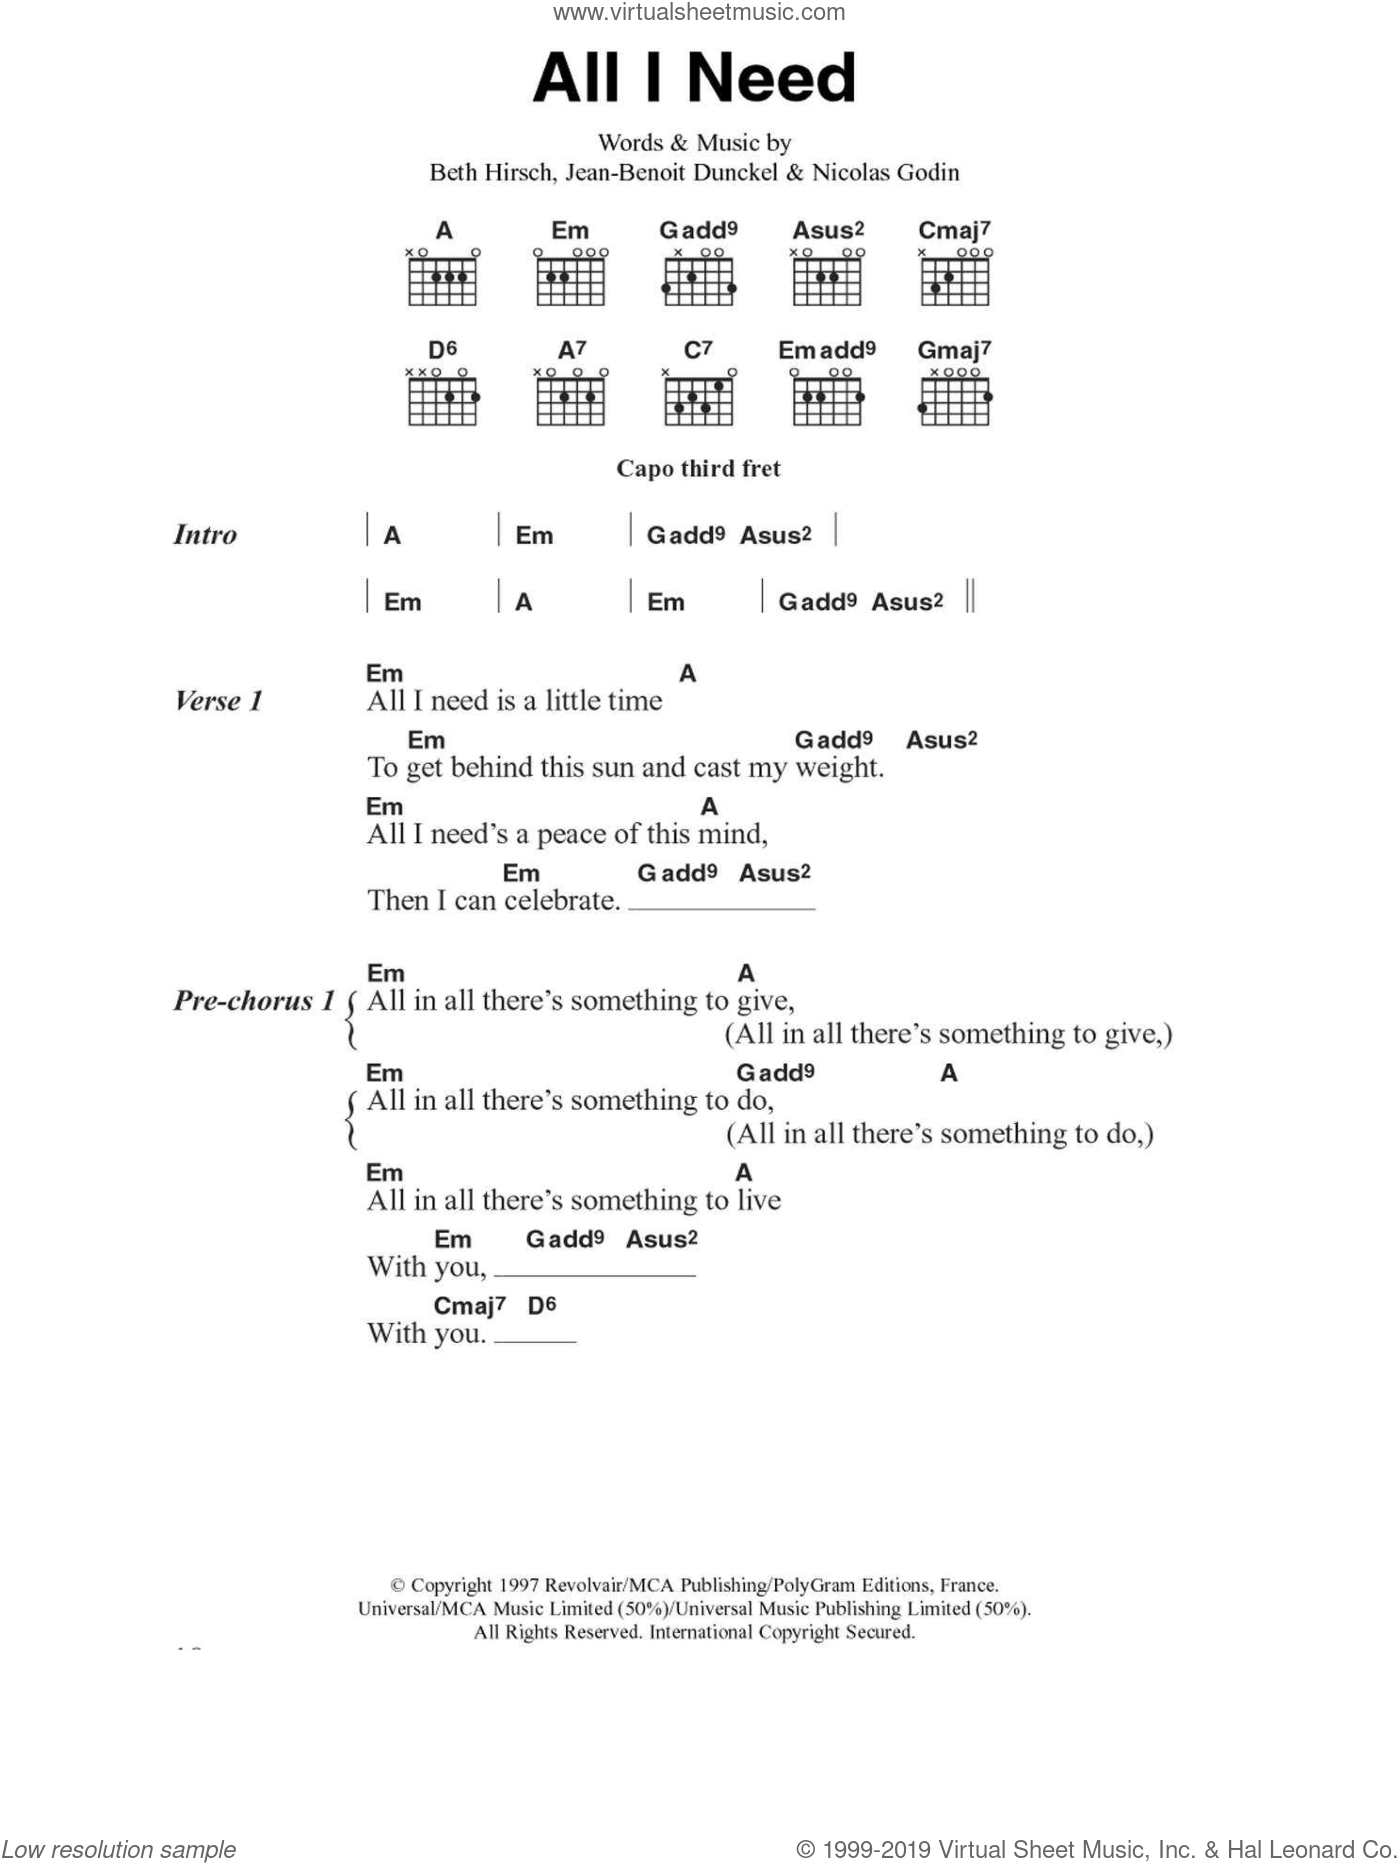 All I Need sheet music for guitar (chords) by Air, Beth Hirsch, Jean-Benoit Dunckel and Nicolas Godin, intermediate skill level